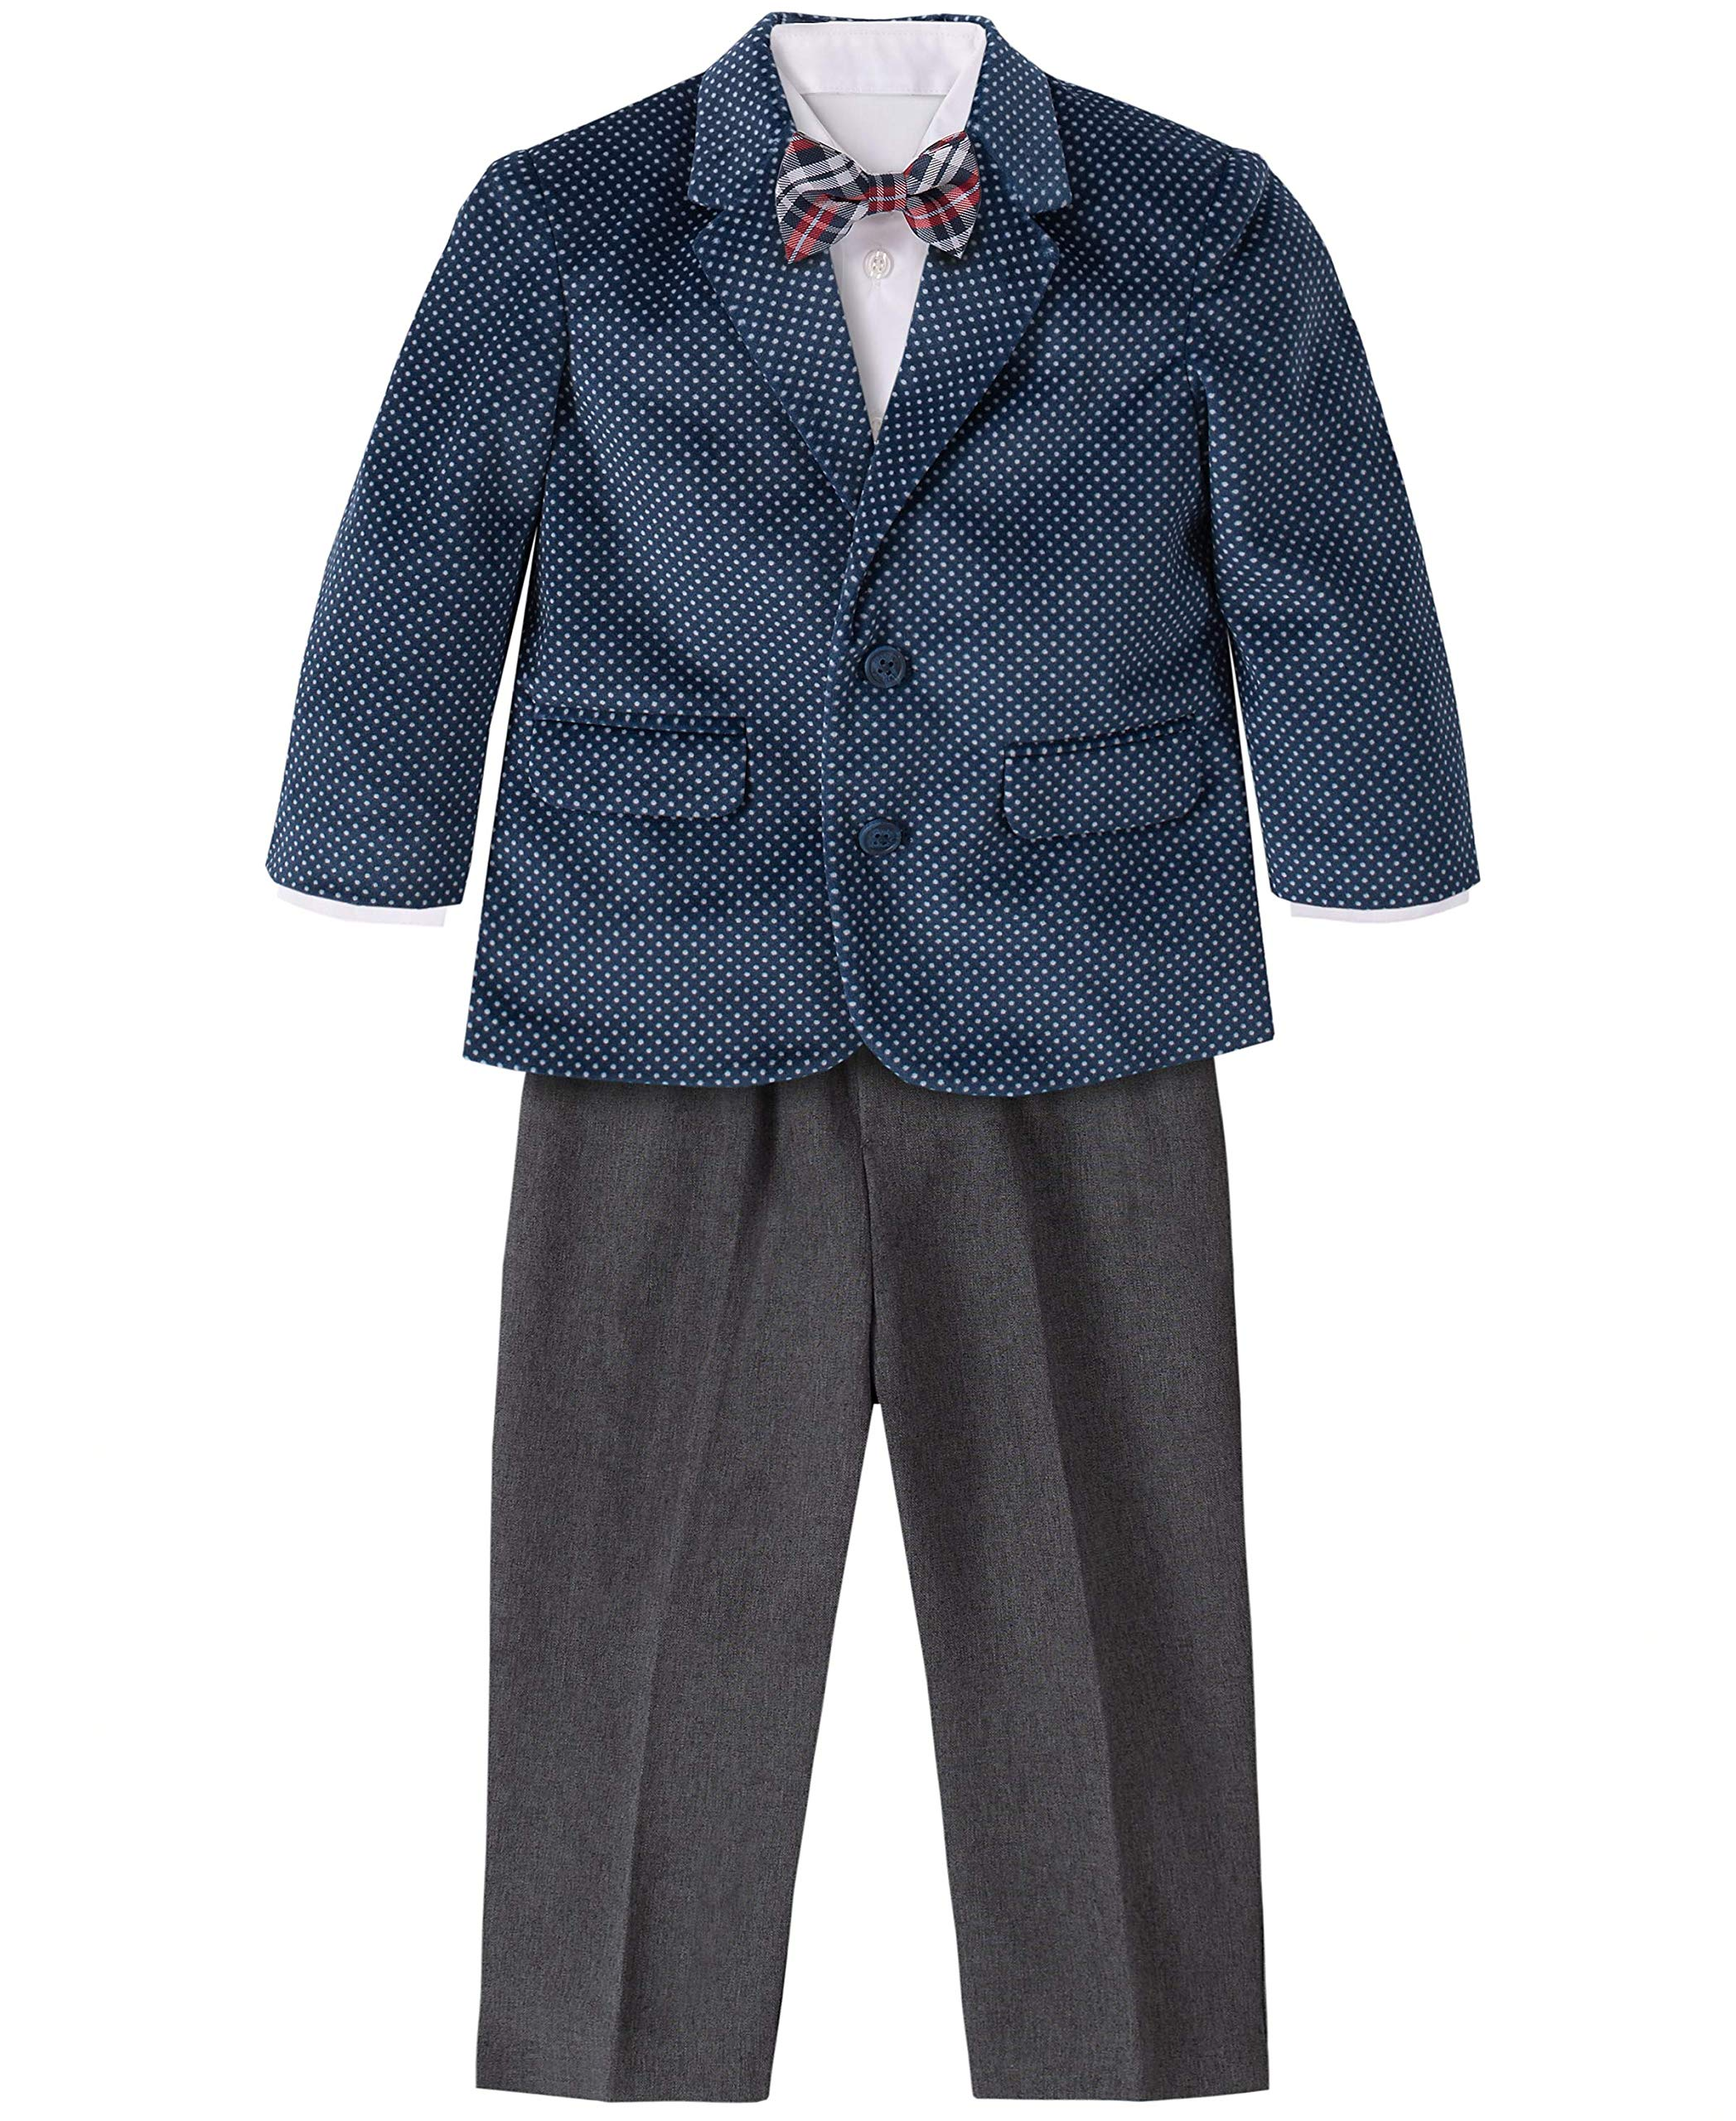 Nautica Baby-Boys 4-Piece Suit Set with Dress Shirt and Bow Tie Suit Jacket Pants